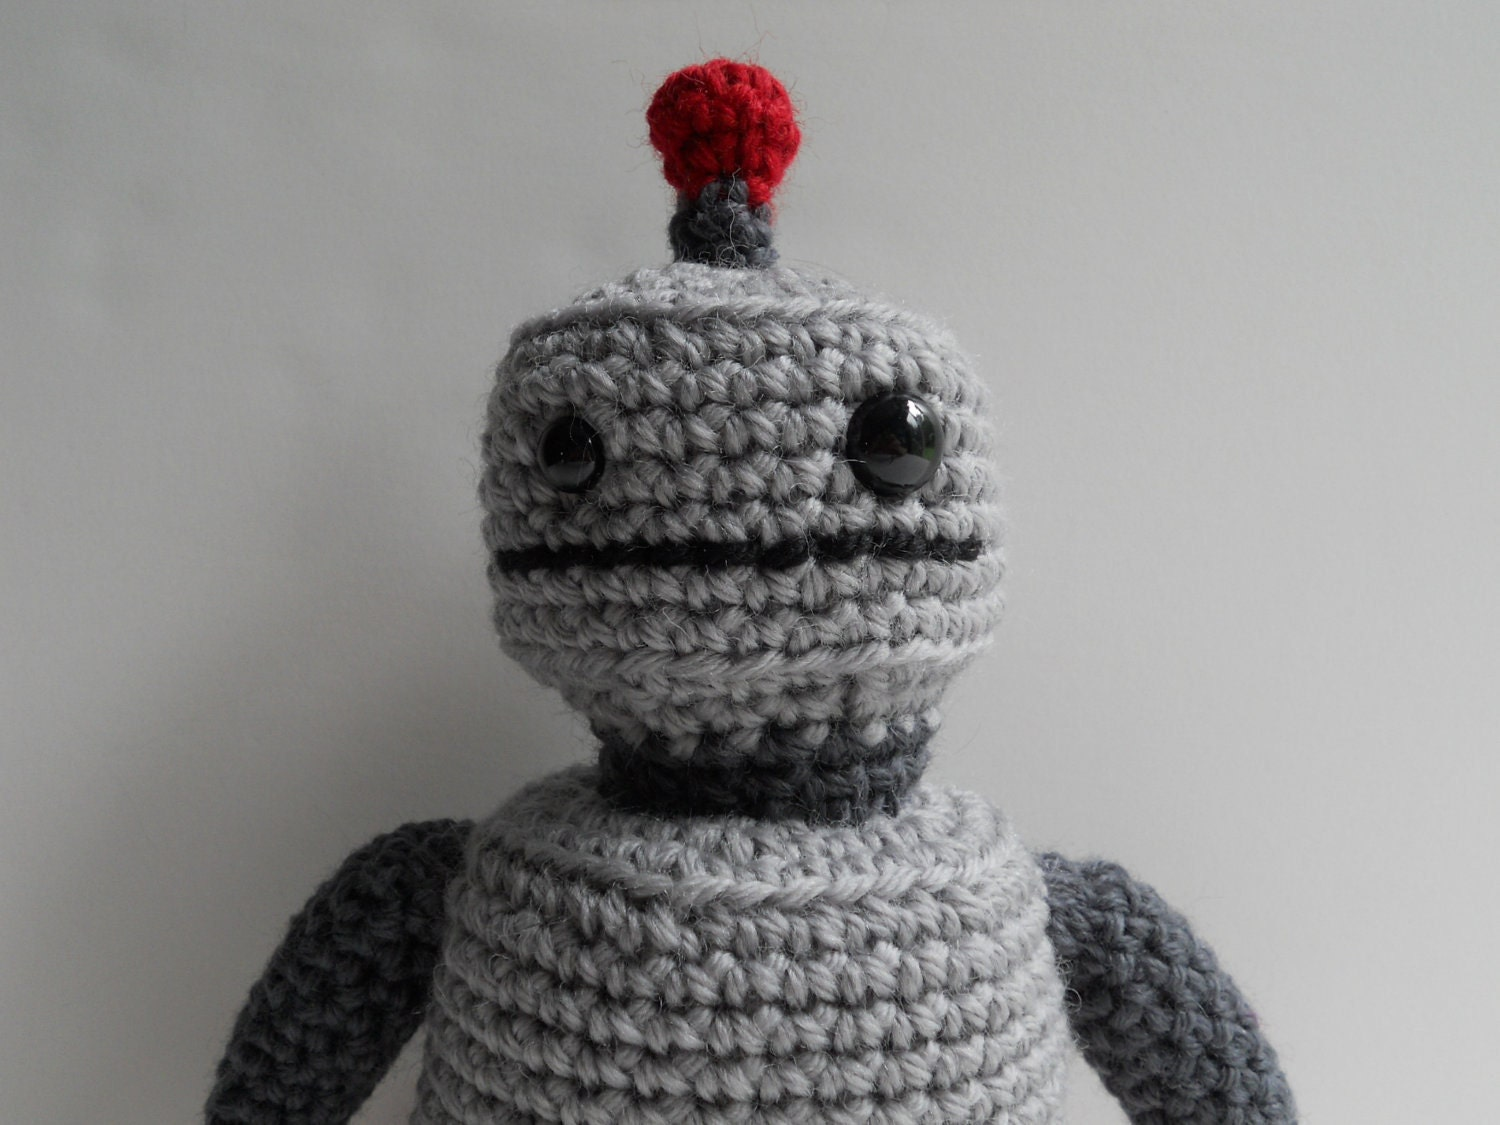 Amigurumi Robot Crochet Patterns : Unavailable Listing on Etsy